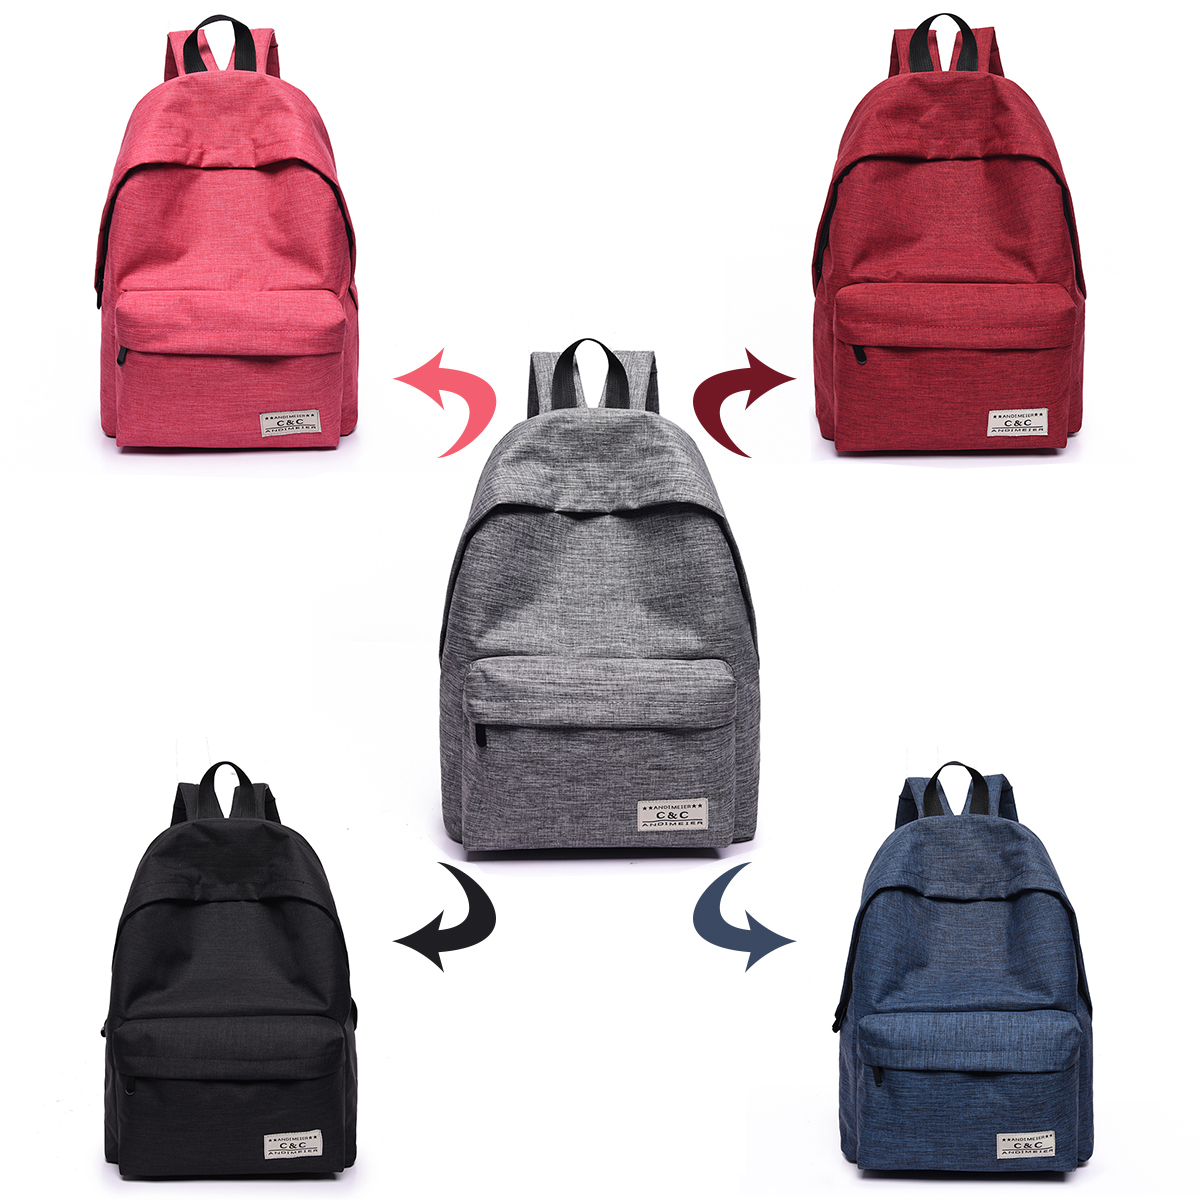 cb226efd15 2017 New Women Canvas Backpacks Fashion Casual Teenager Girls School Bags  Big Backpacks for College Students Mochila Feminina-in Backpacks from  Luggage ...